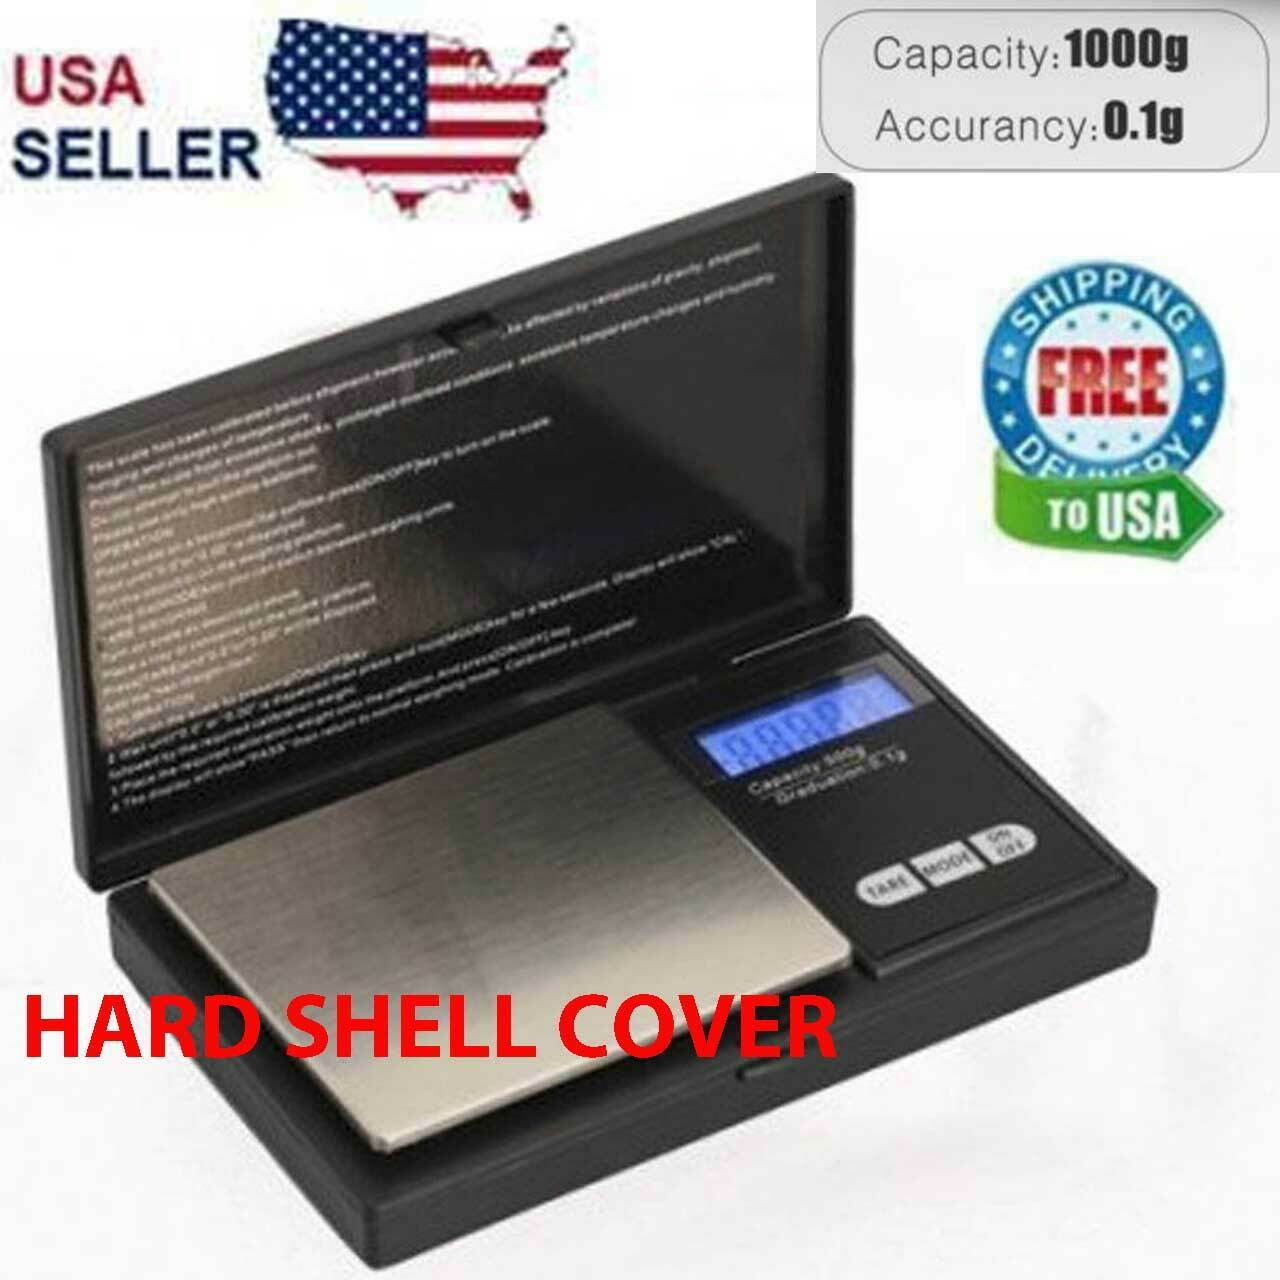 Digital Scale 1000g x 0.1g Jewelry Pocket Gram Gold Silver Coin Precise NEW Jewelry & Watches